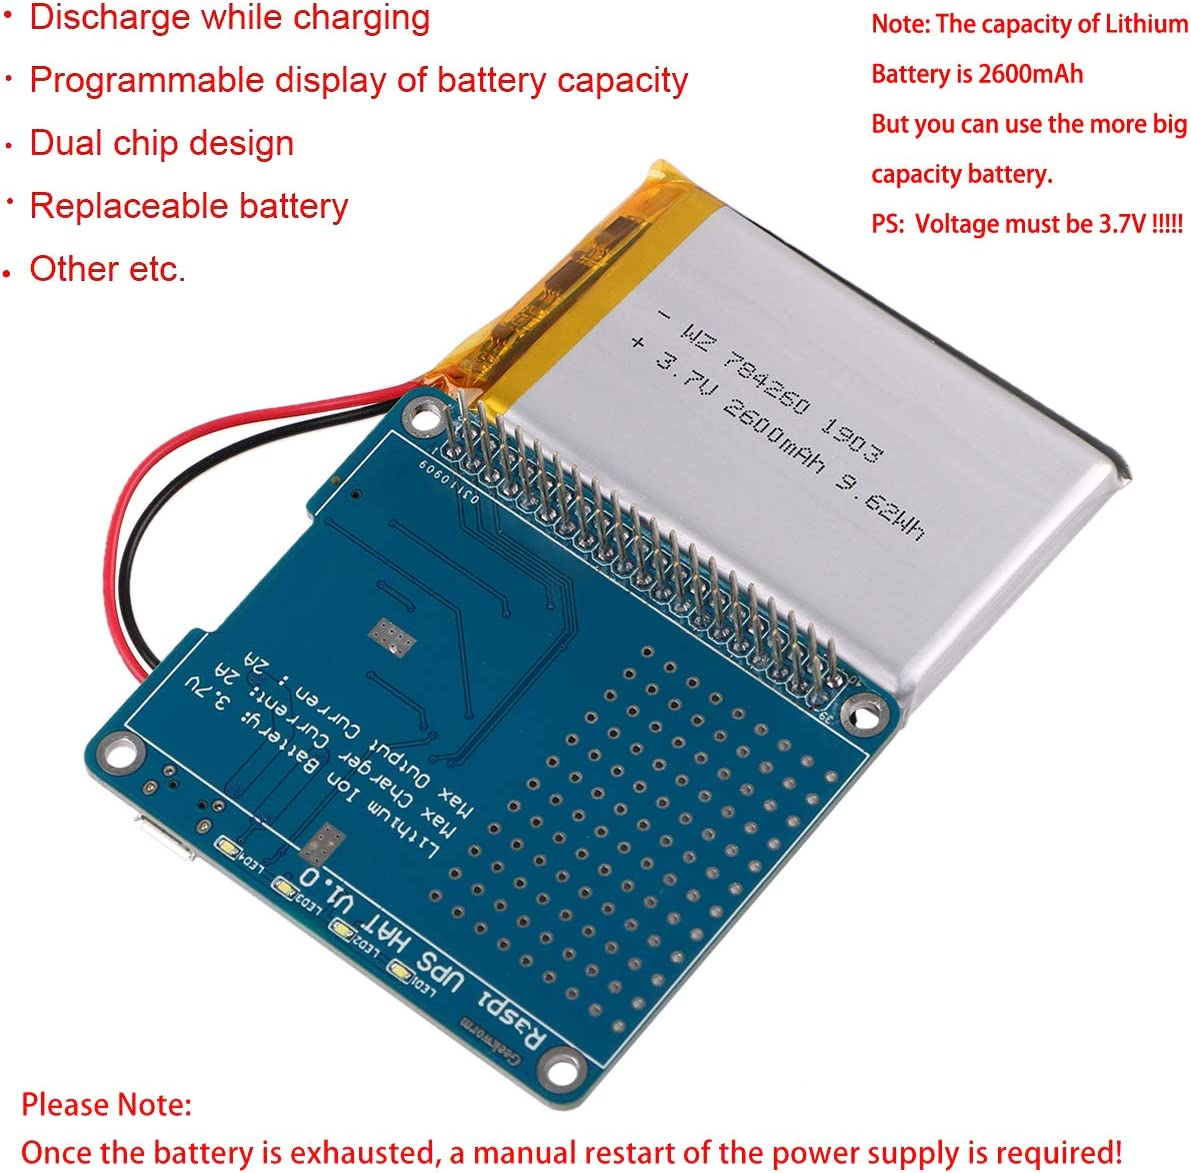 Raspberry Pi3 3700mAh LithiumBattery Power Supply Expansion Board RPI Powerpack